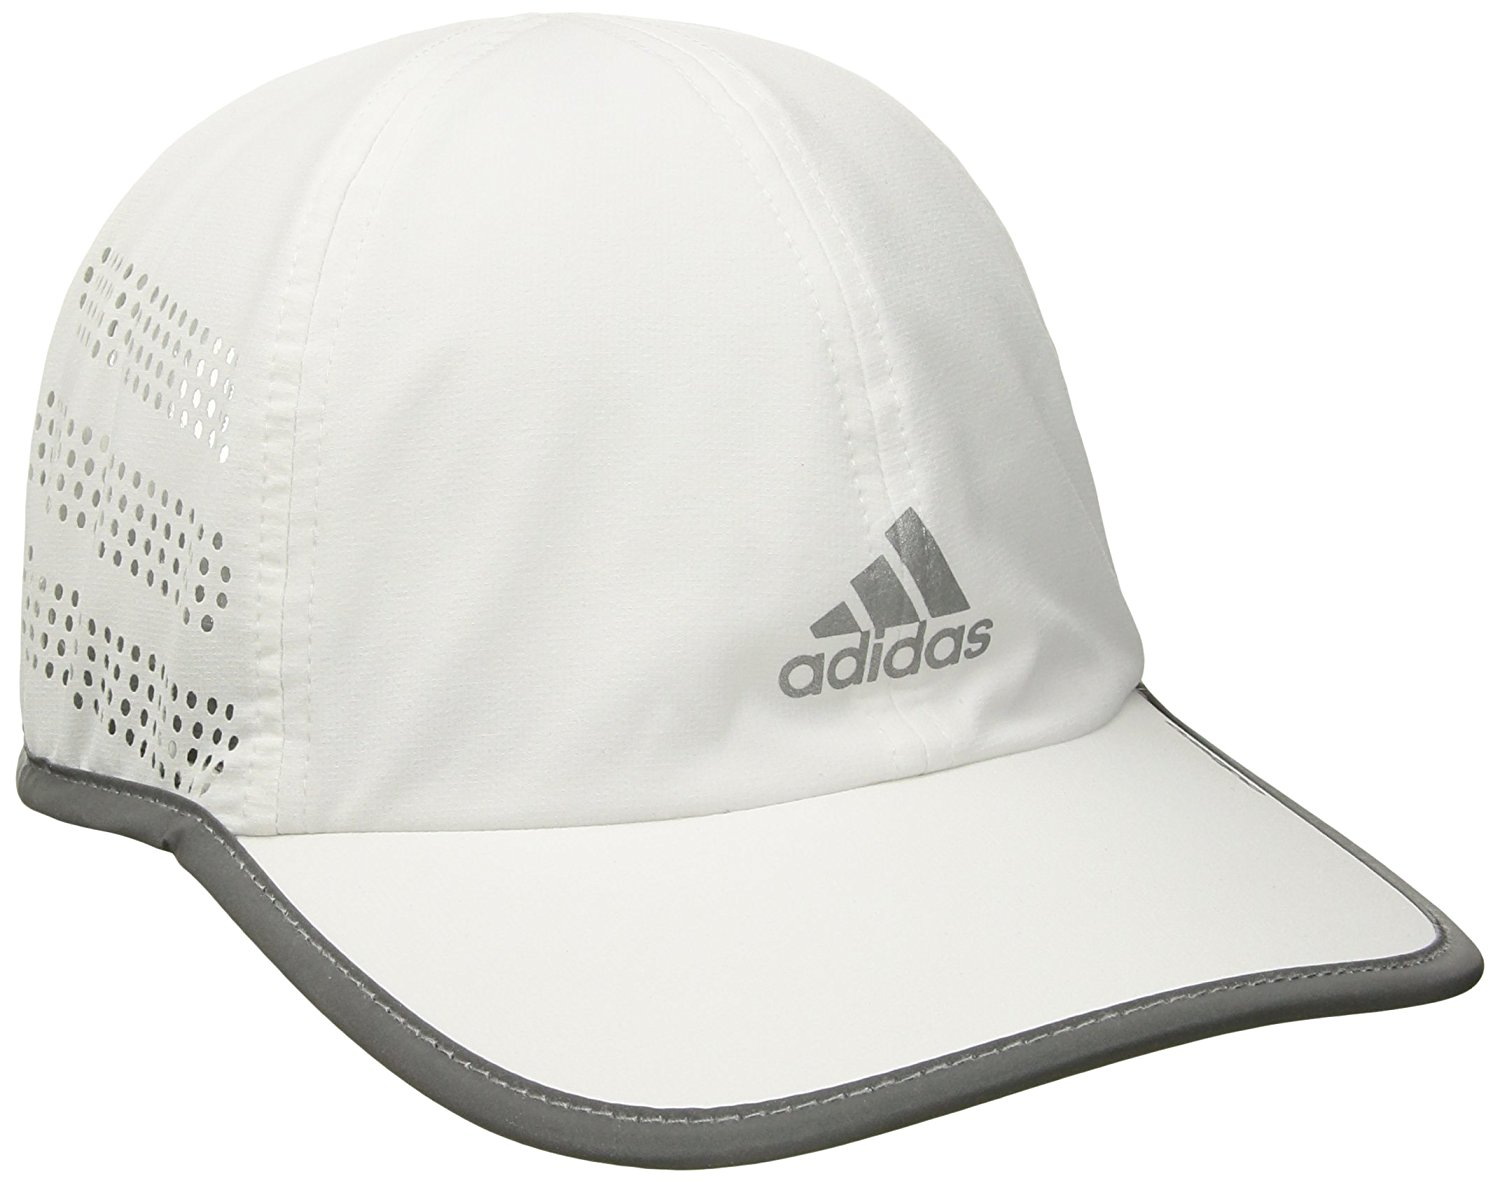 a1698f20169 Get Quotations · adidas Men s Adizero Cap